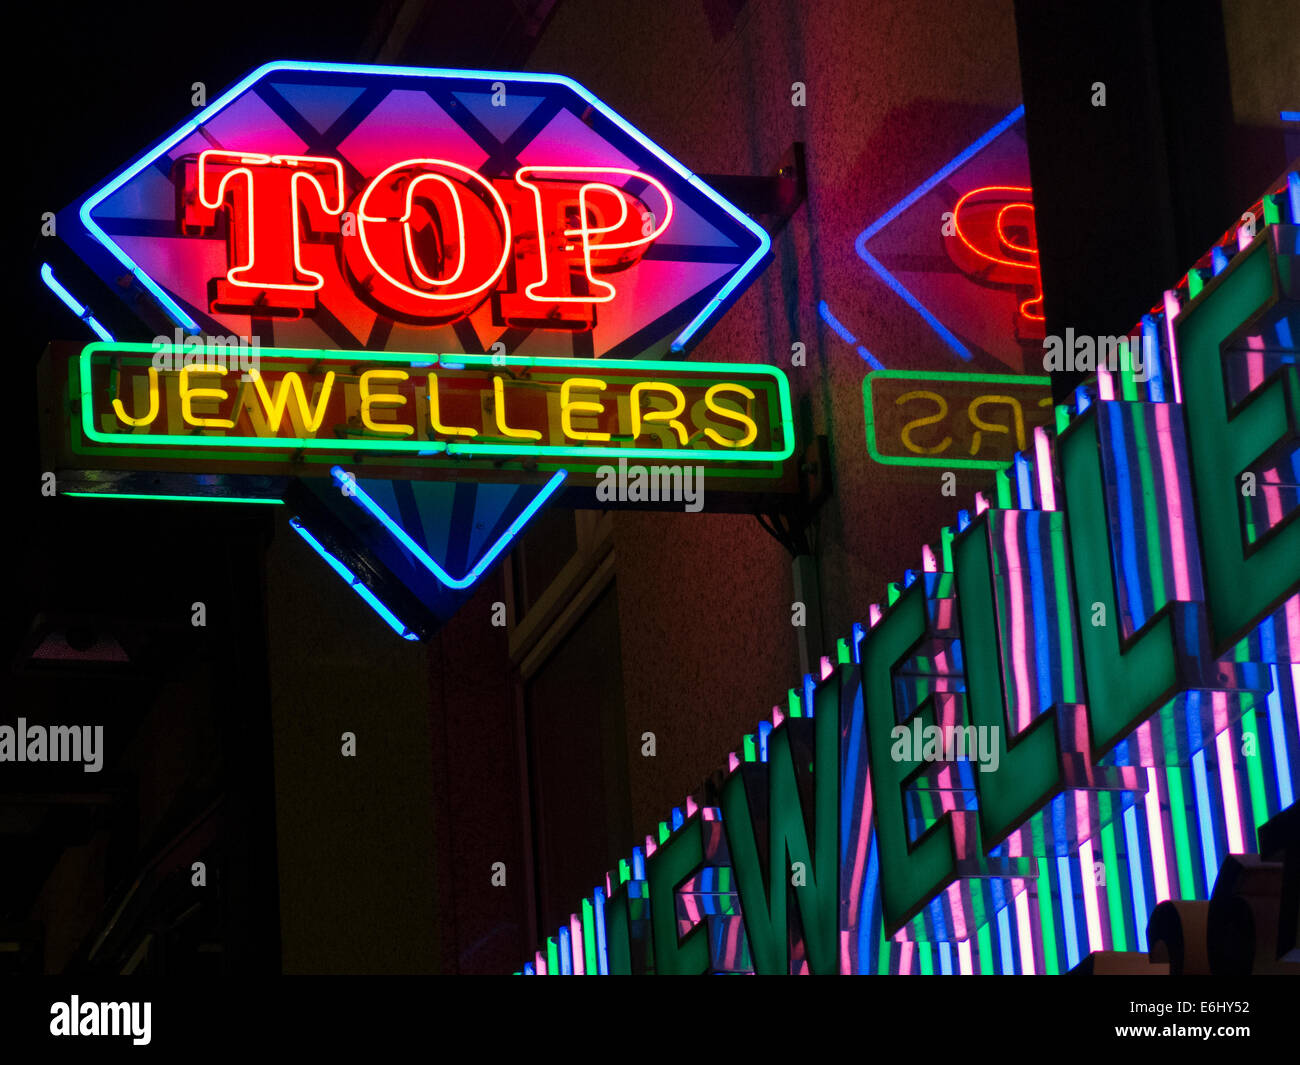 Jewellers,Jeweller,dusk,evening,dark,neon,sign,colorful,colourful,asian,pakistan,afghan,gold,silver,bangles,ring,rings,Manchester,City,Centre,England at Night bright,Gotonysmith